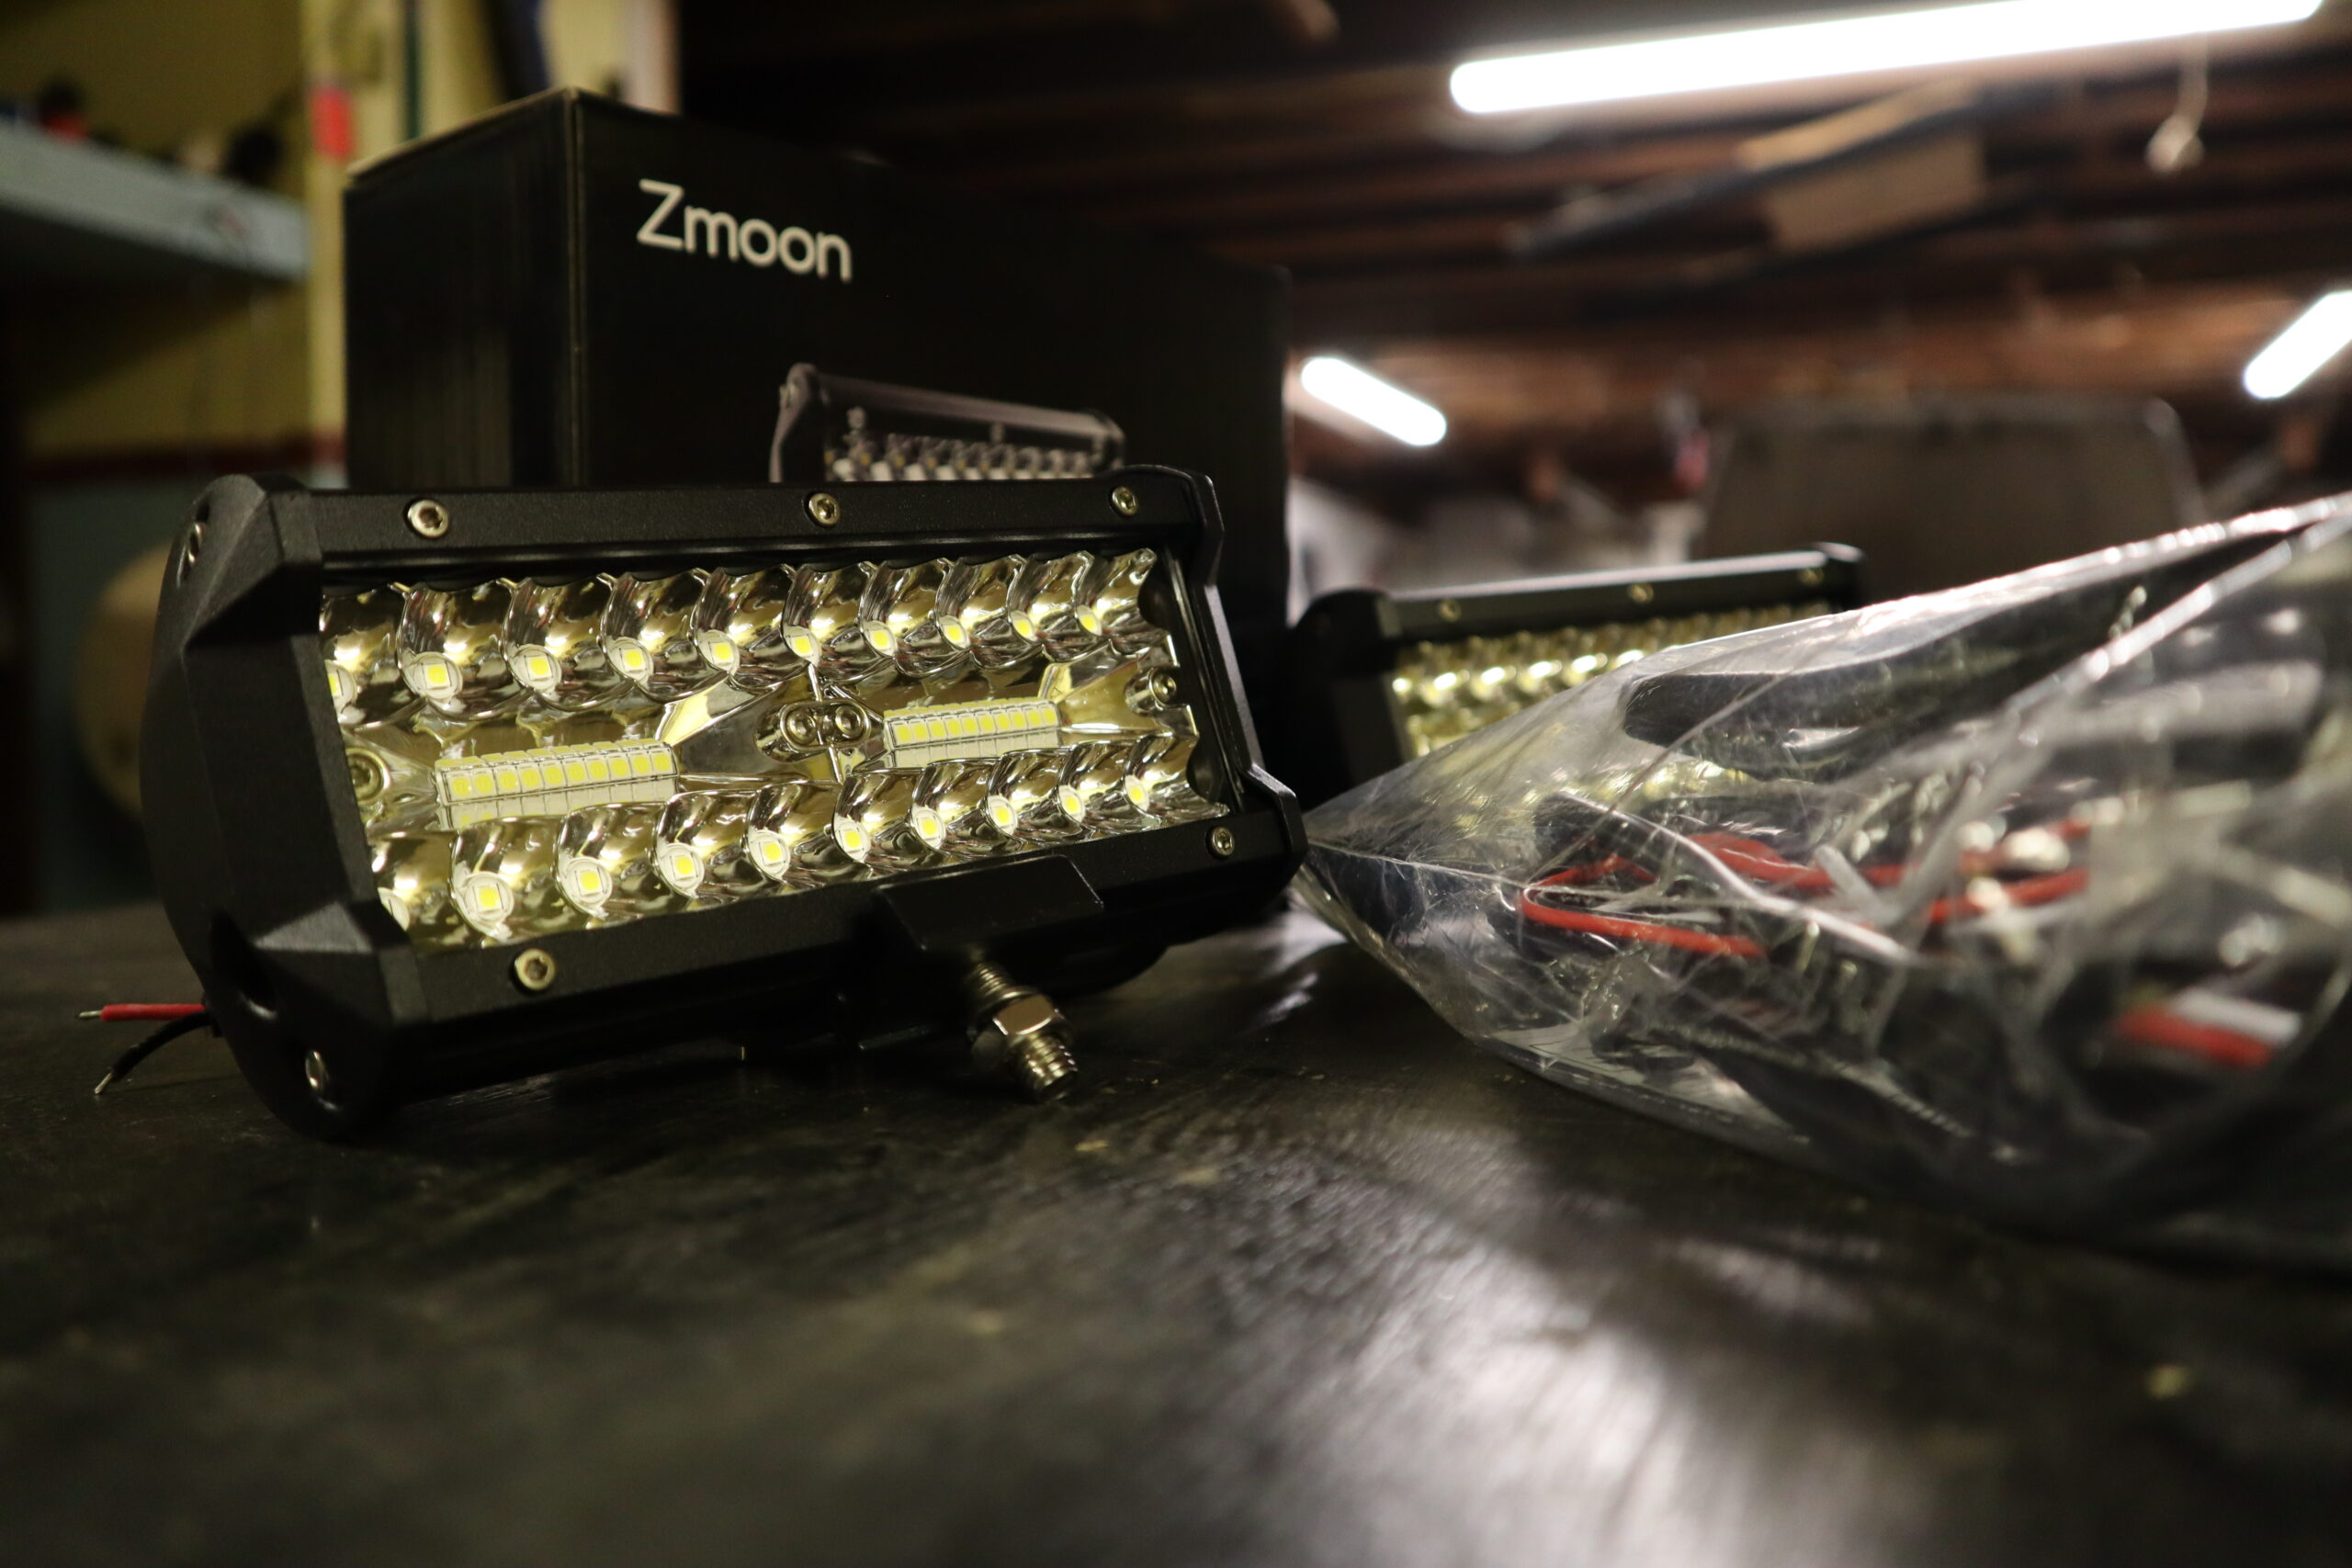 $34 LED Lights? Lets see what that's all about. Zmoon 4″ LED lights review!